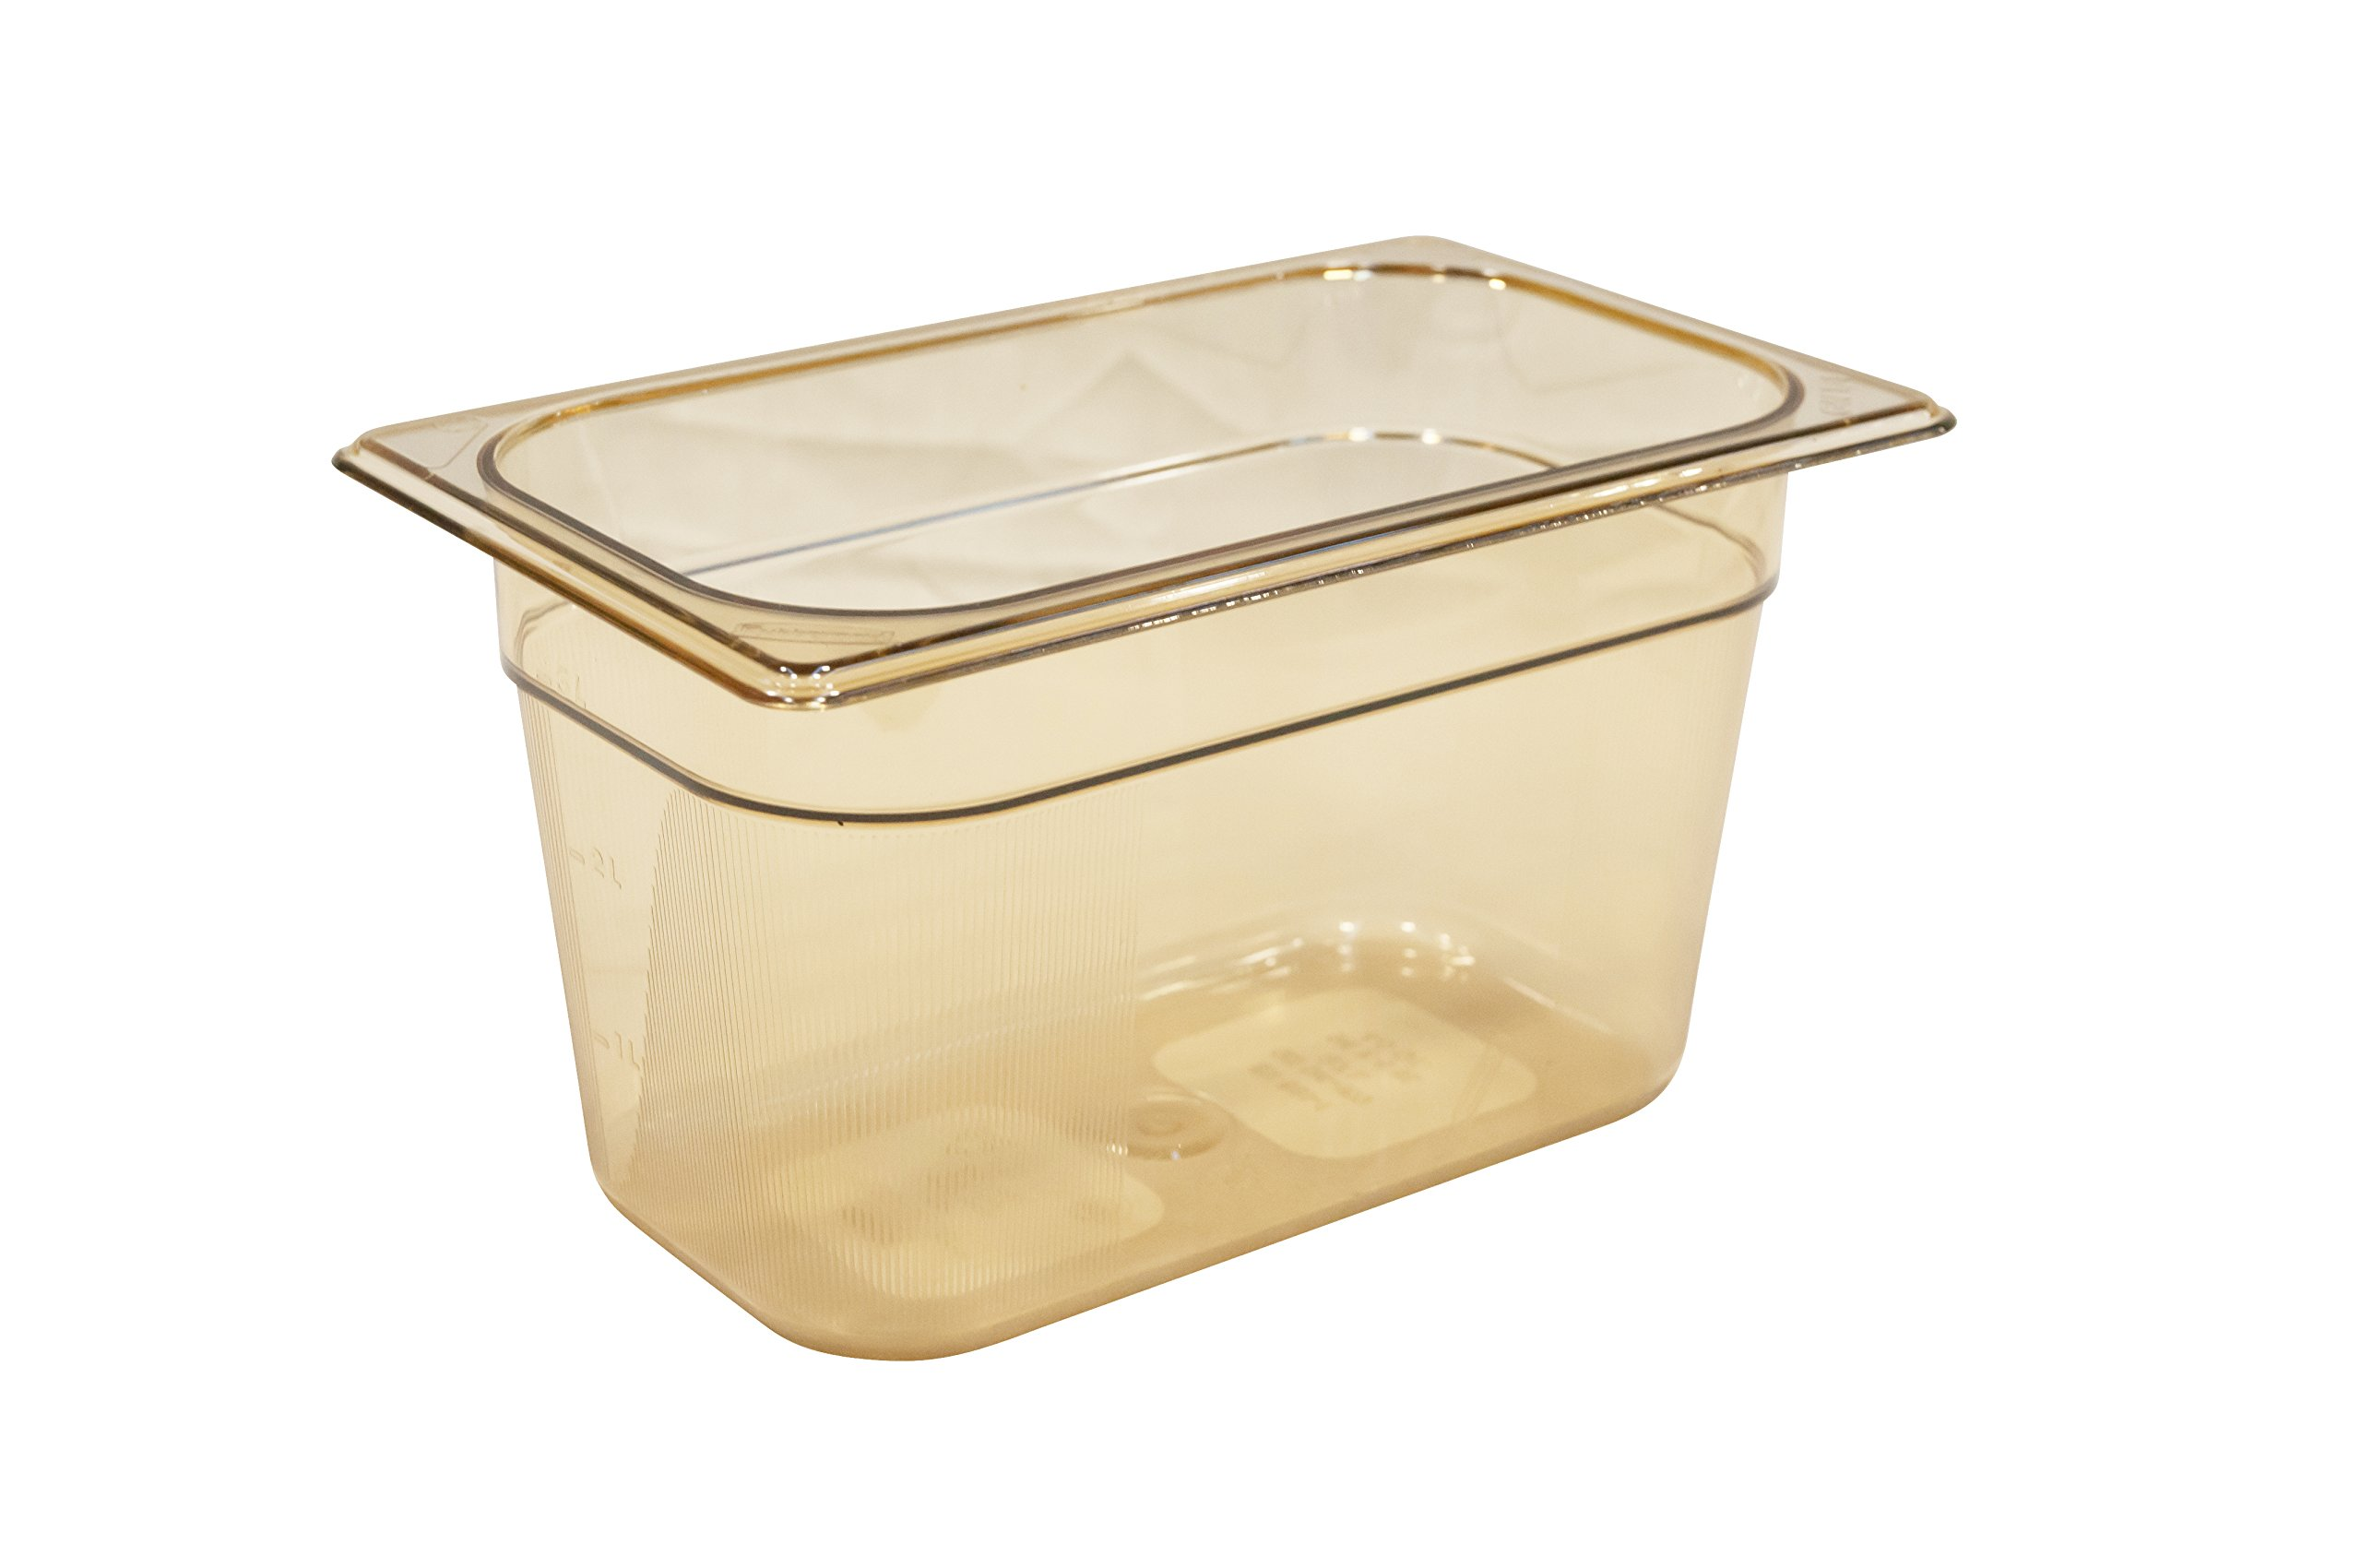 Rubbermaid Commercial Products FG212P00AMBR Hot Food Pan, 1/4 Size, 4 quart, Amber